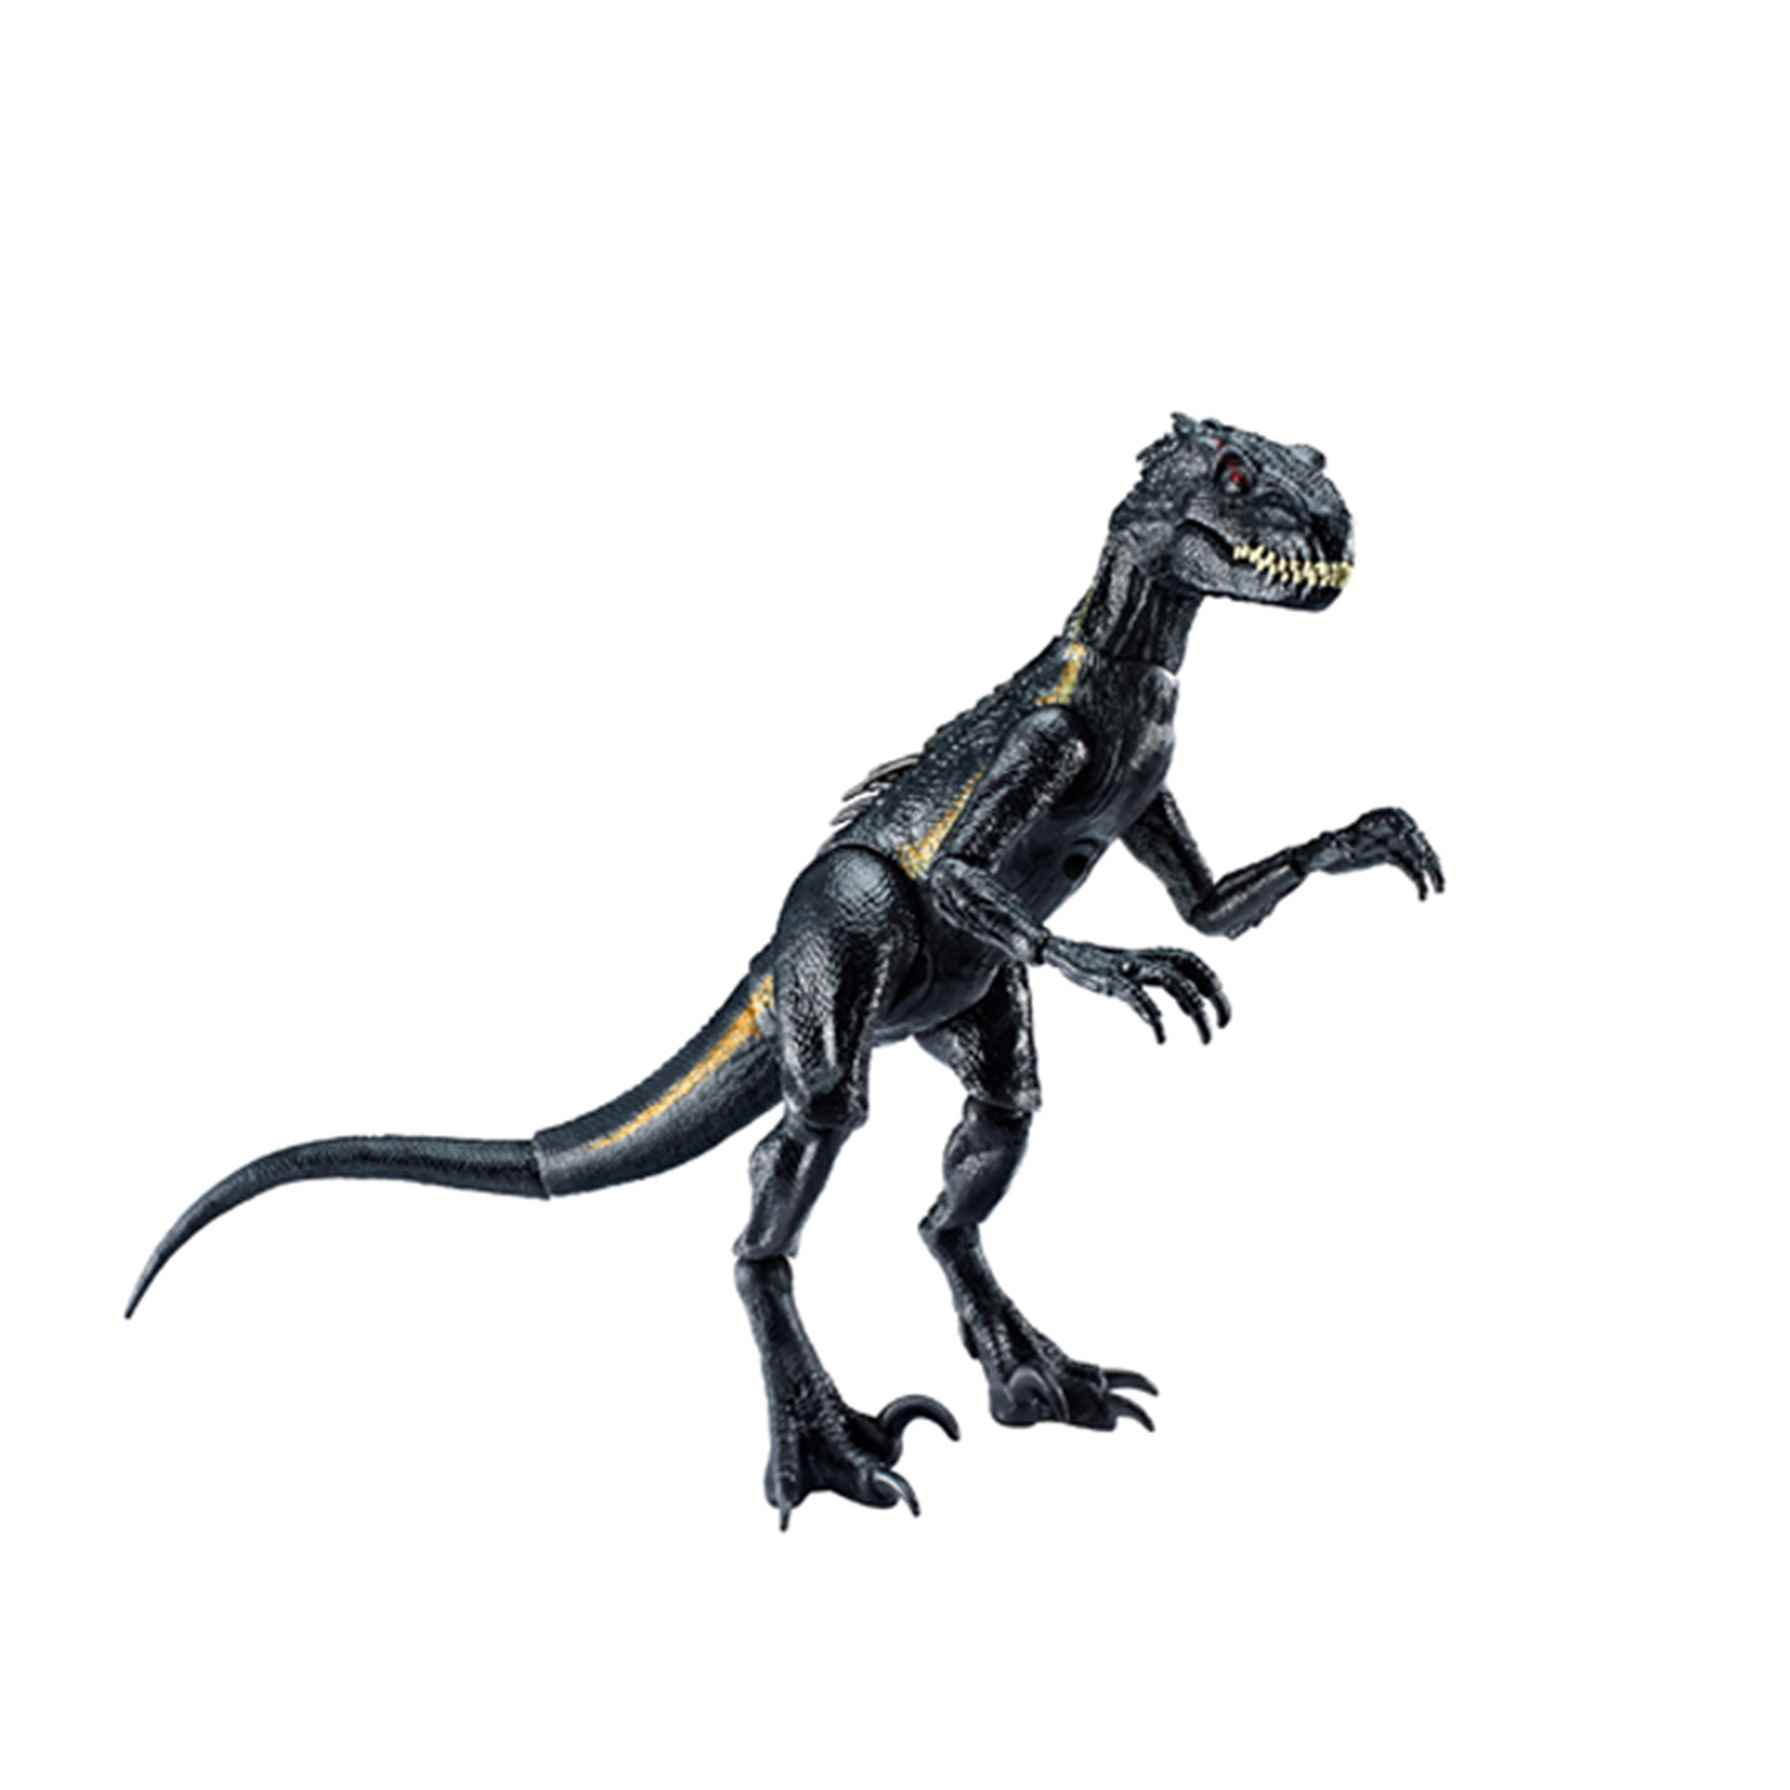 Jurassic World Dino-Villano